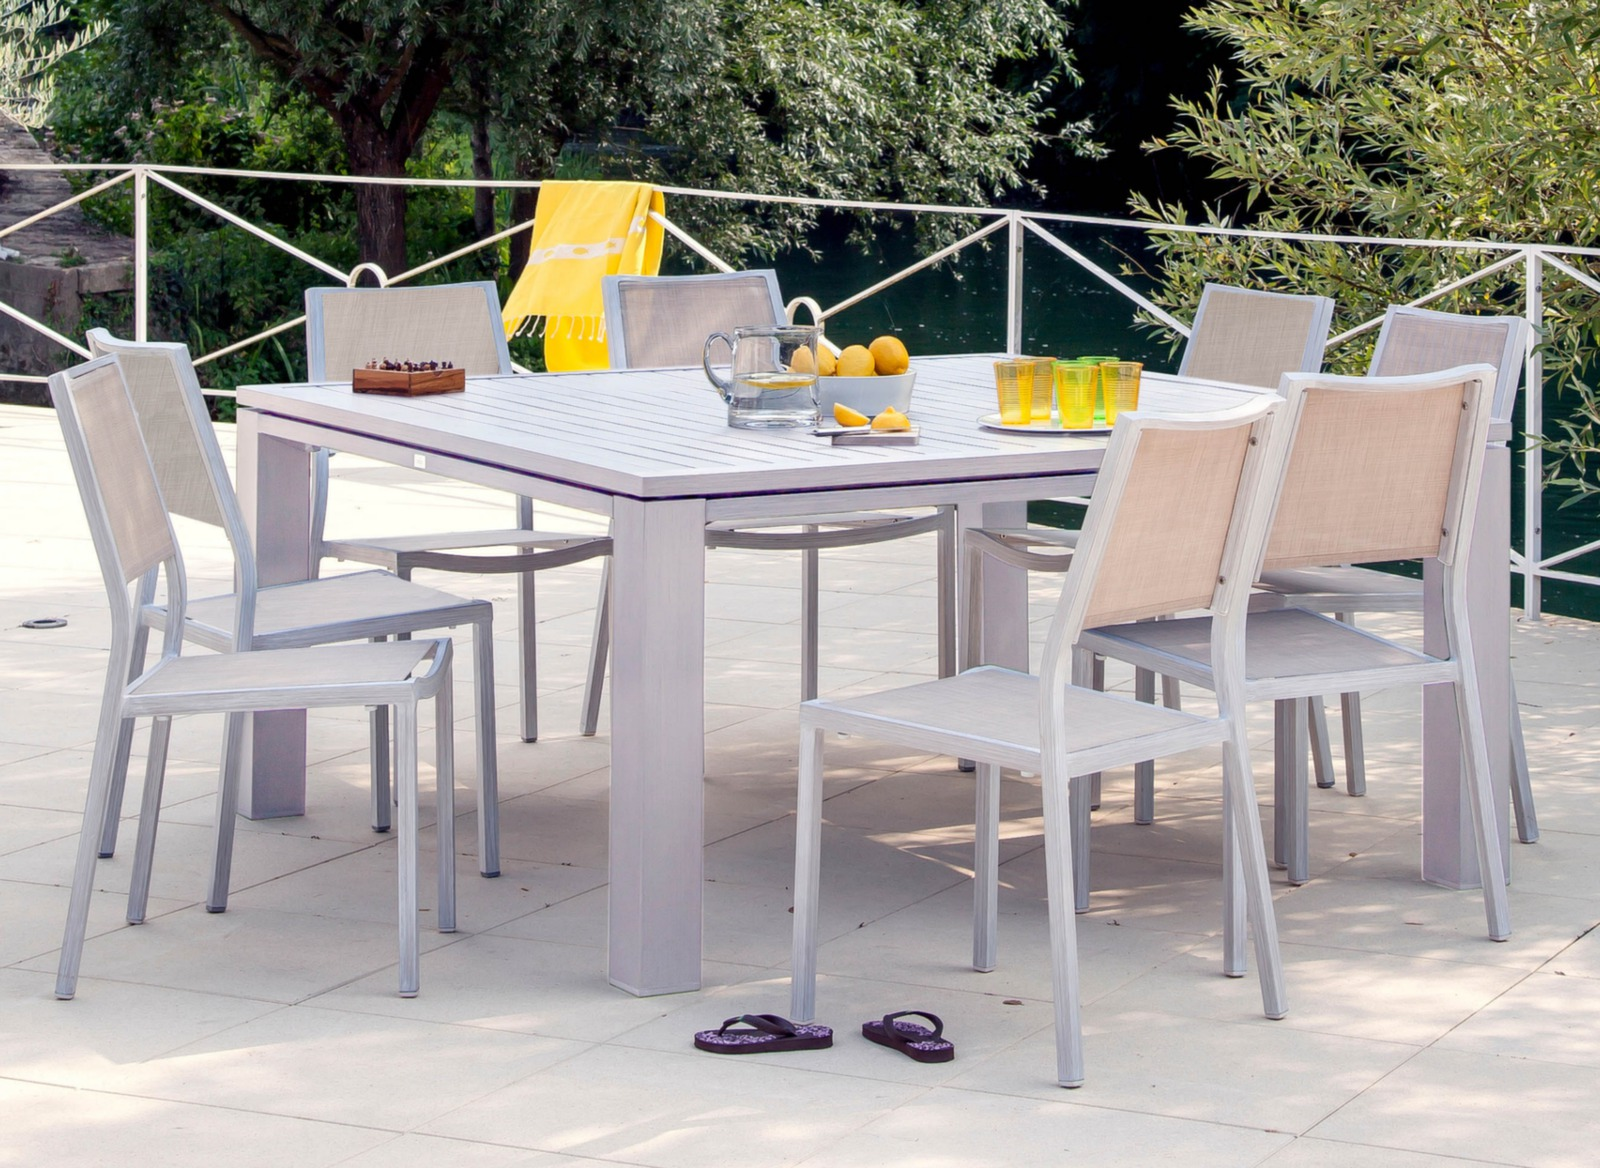 Table de jardin carr e fiero 160cm mobilier de jardin - Table de jardin carree extensible ...